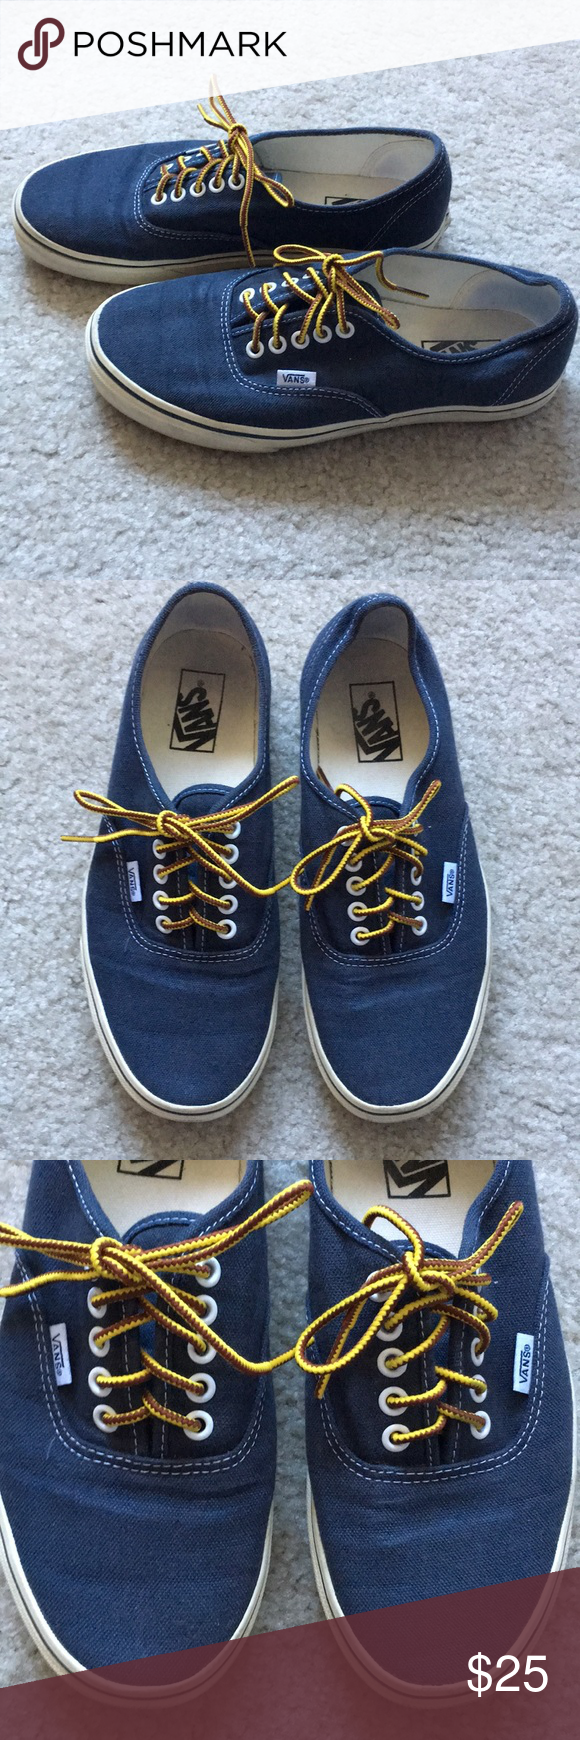 20342b27f576 Men s Vans for JCrew in Navy Washed Canvas Vans for JCrew item 17554. True  to size. Only worn a couple of times. This is a men s size 8.